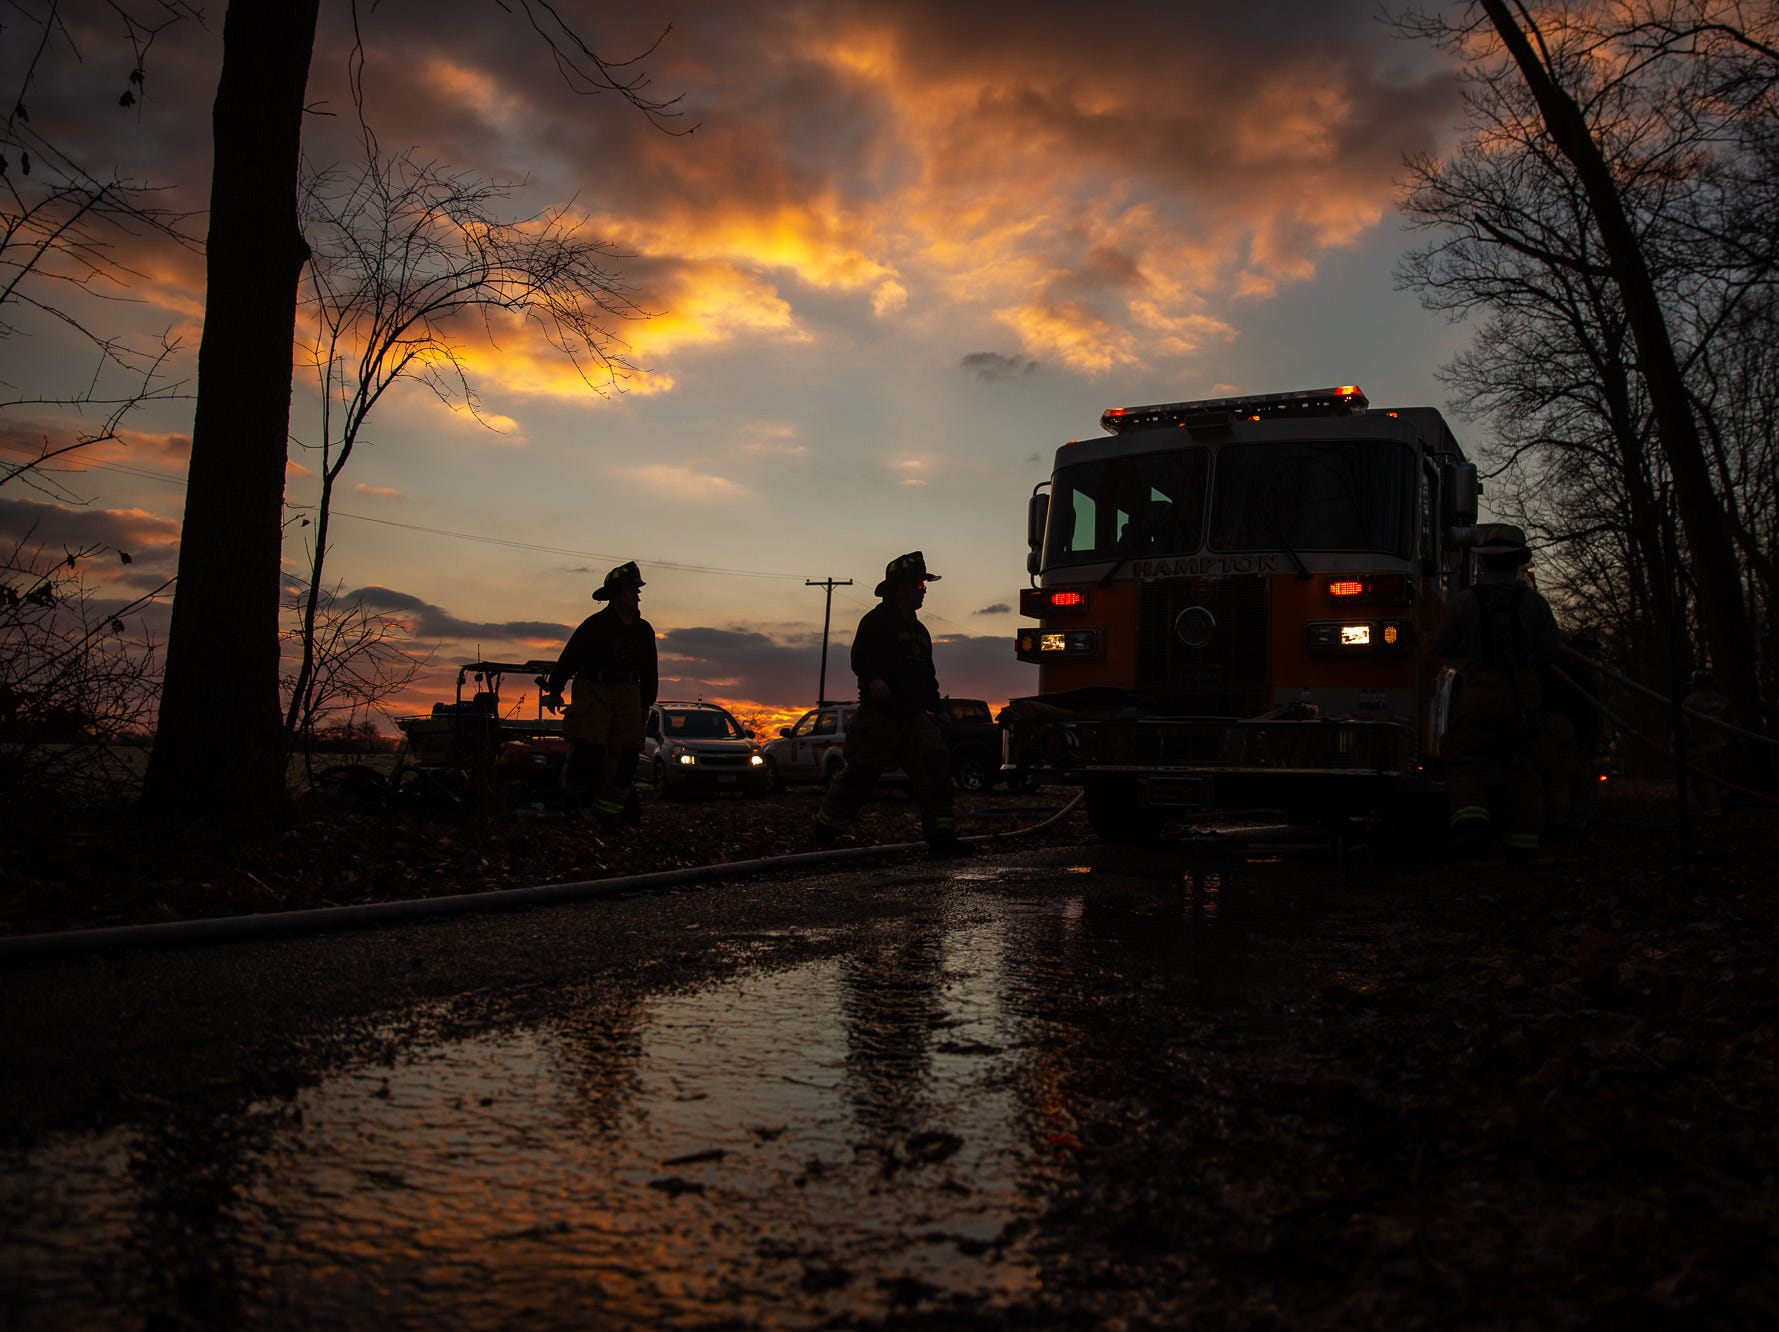 The sun begins to rise as firefighters work at the scene of a well-involved working house fire on the 200 block of Waldheim Rd., early Sunday, Jan. 6, 2019, in Hamilton Township. Hampton Fire Chief P.J. Trimmer said that the sole occupant of the house was able to escape safely with his dog, and there were no injuries in the fire. The house, which collapsed into the basement, is a total loss, and the detached garage suffered extensive damage, said Trimmer.